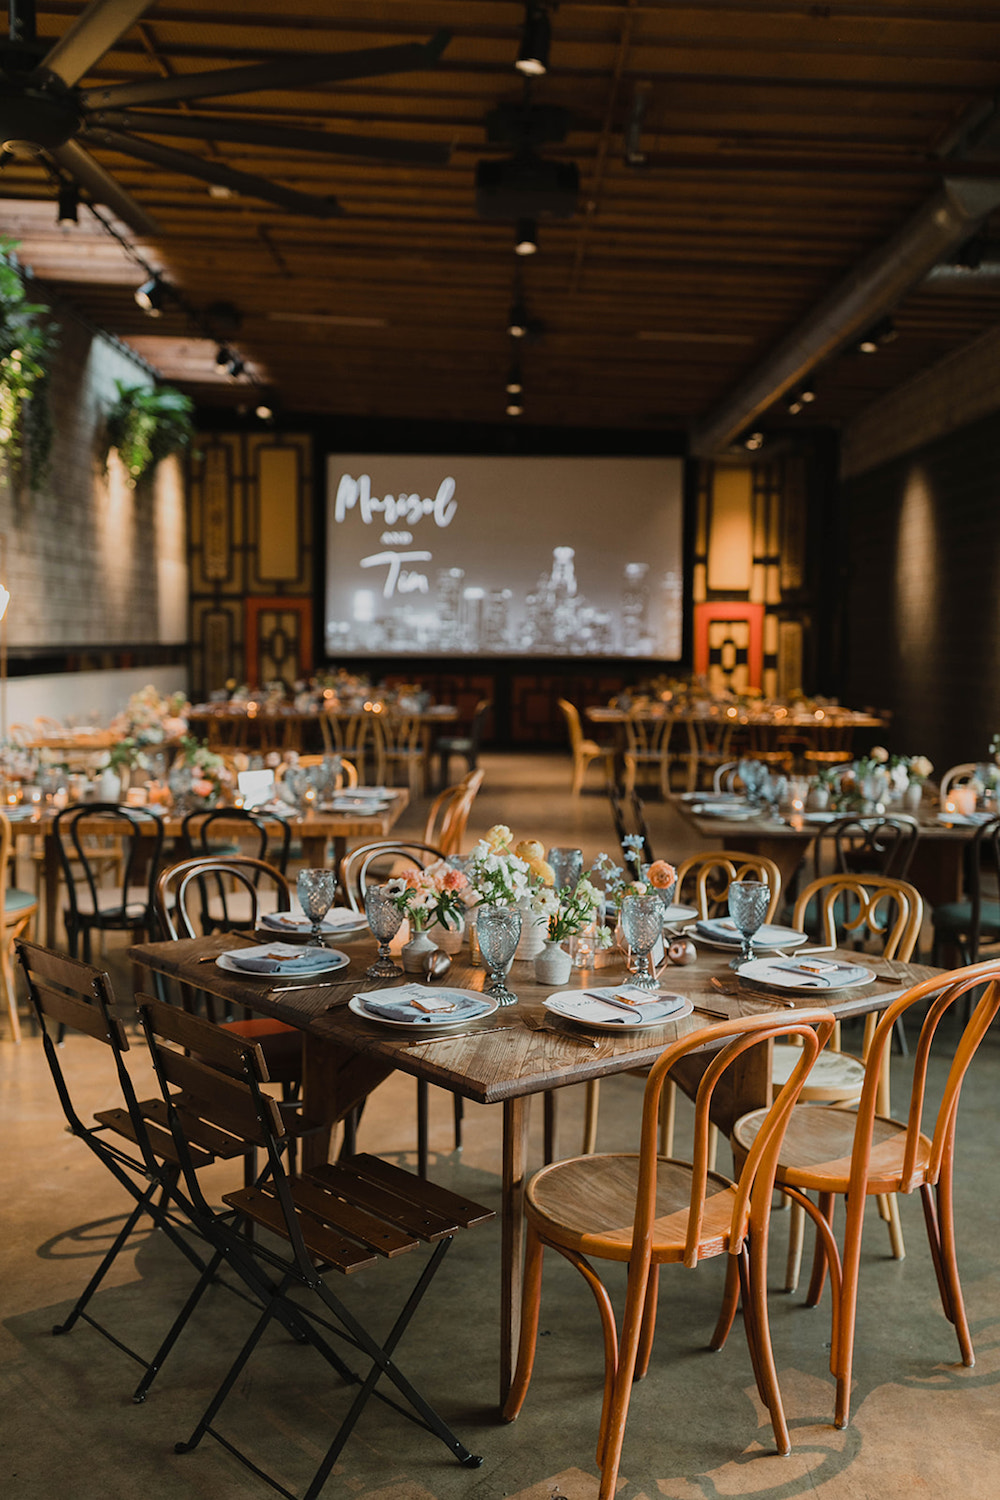 Modern Tropical Smogshoppe Wedding with Wooden Tables